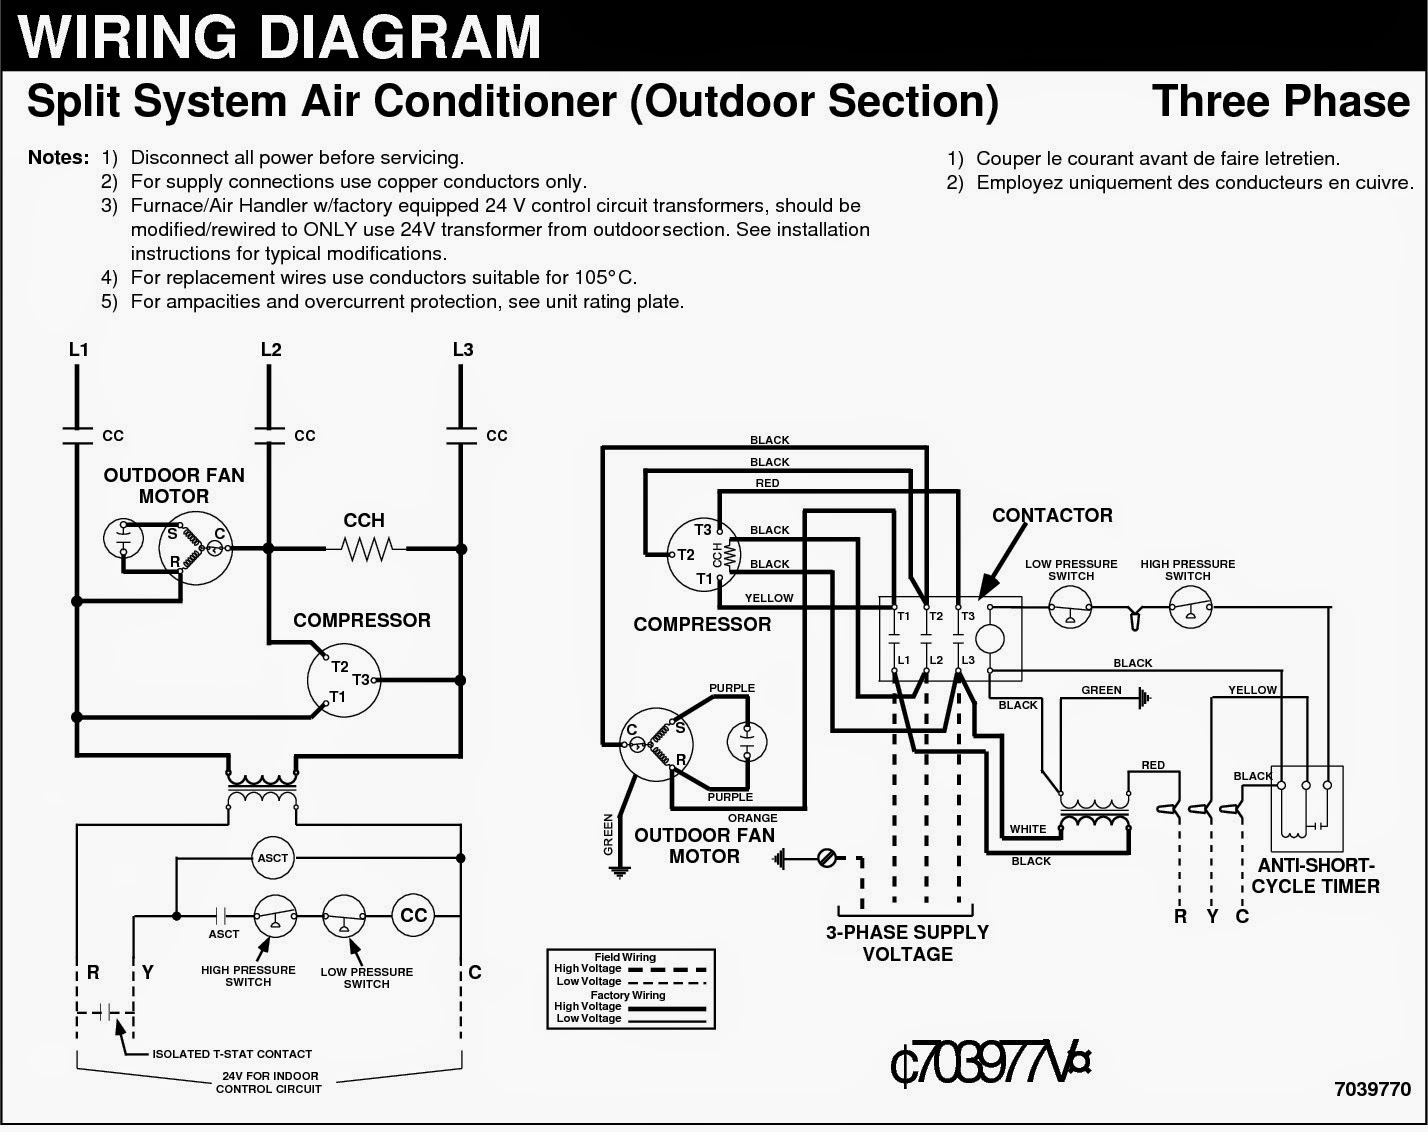 3+phase ac wire diagram ac condenser fan motor wiring \u2022 wiring diagrams Servo Motor Wiring Diagram at n-0.co